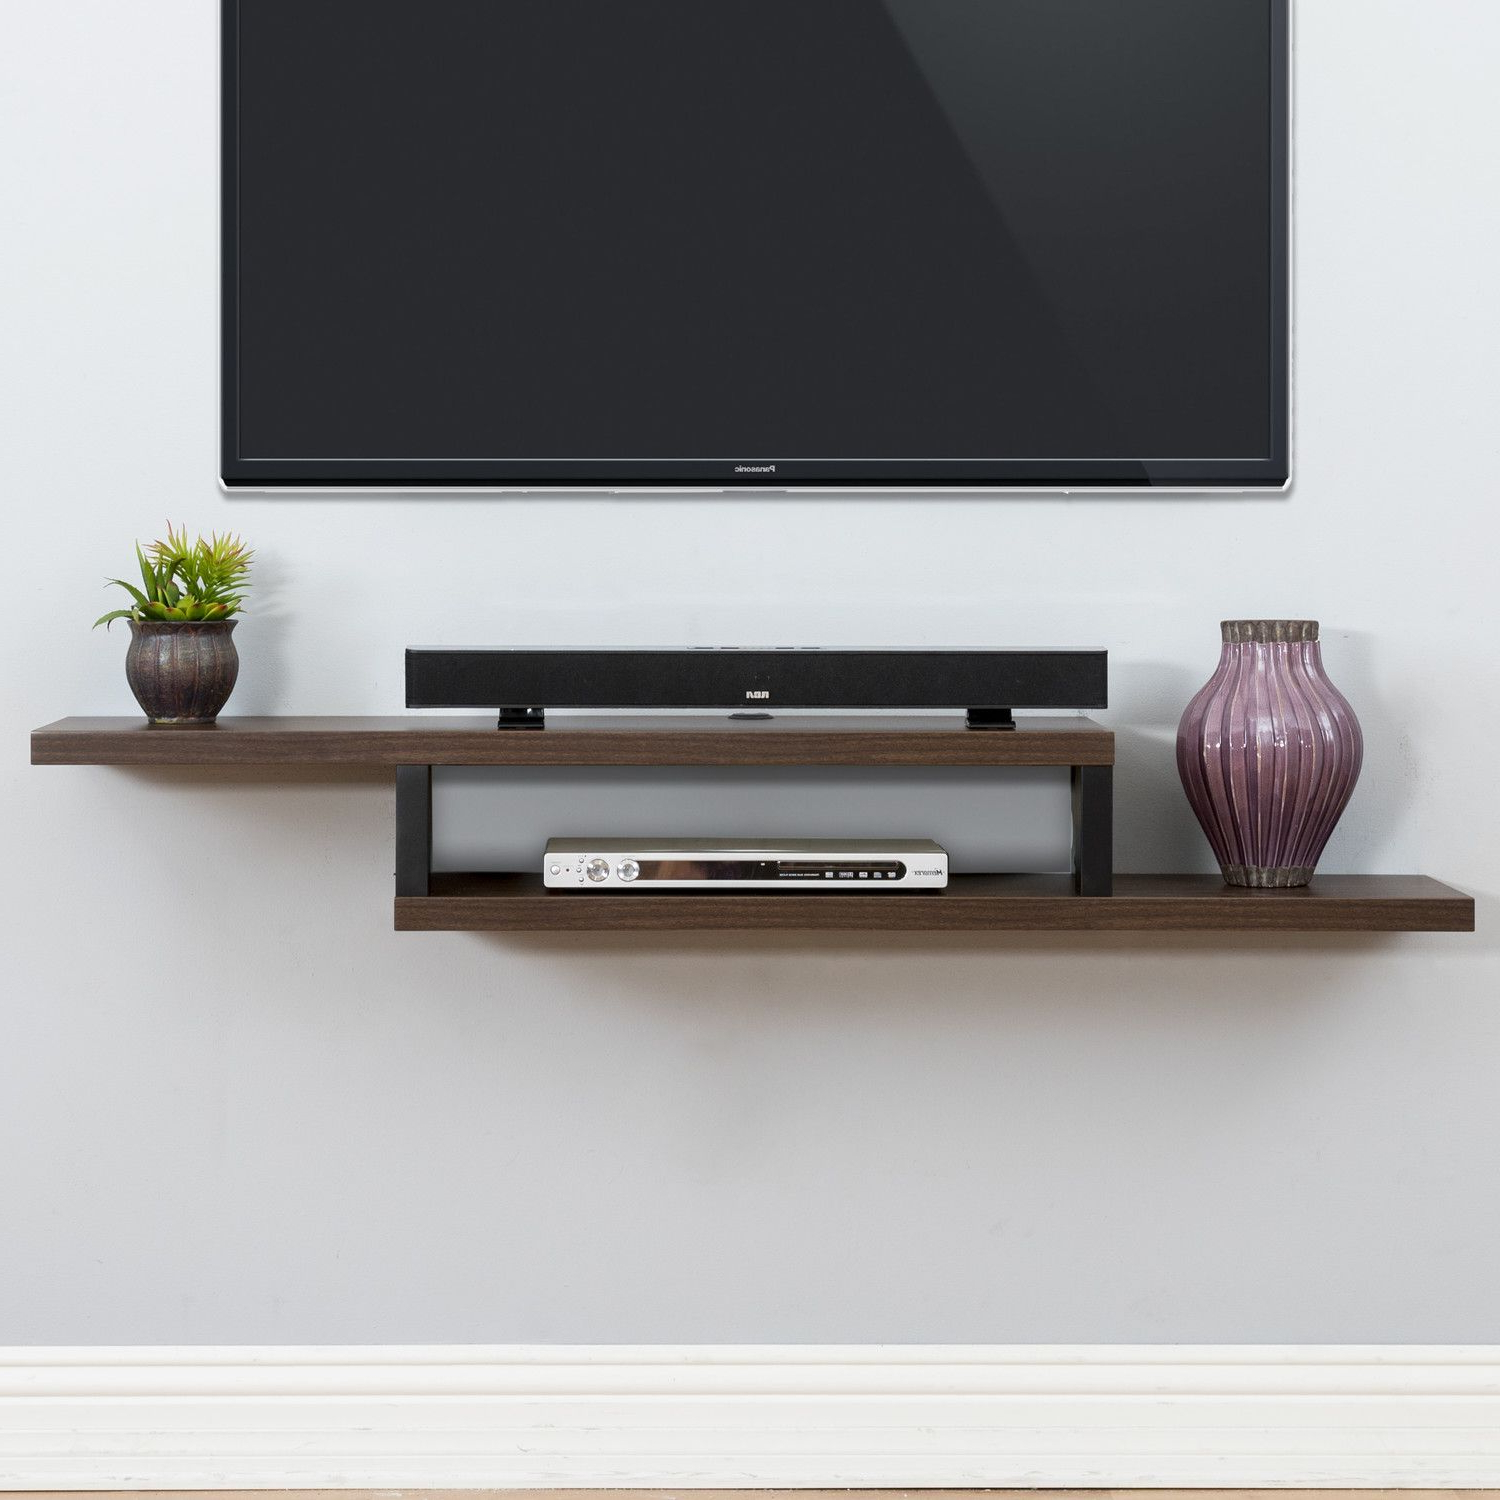 Tv Wall Mount Style Ideas To Combine With Your Attractive And With Famous Console Tables Under Wall Mounted Tv (View 9 of 20)